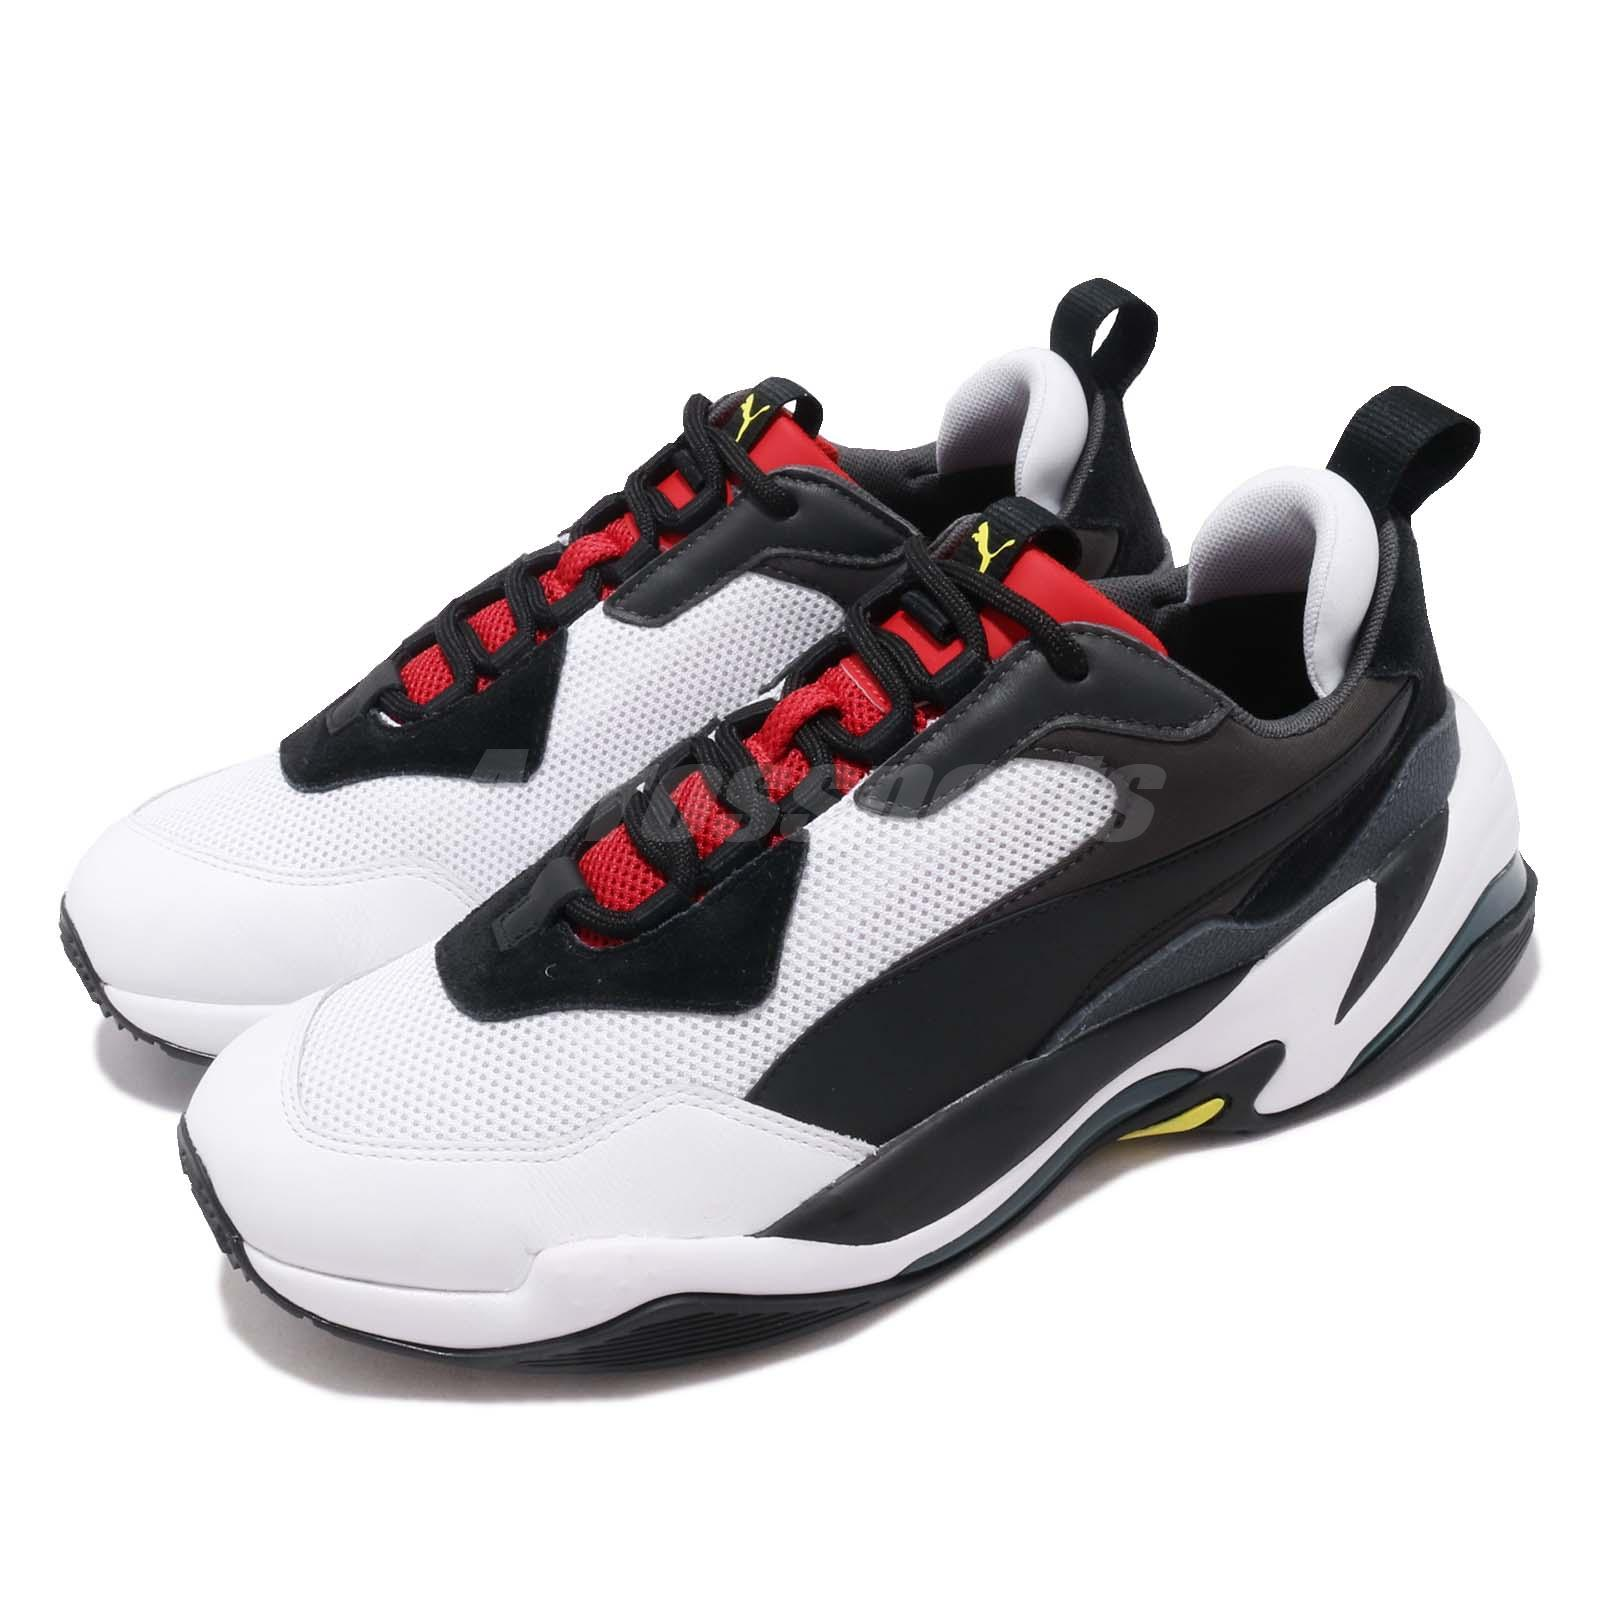 a5d1d082a Details about Puma Thunder Spectra Black Red White Men Women Lifestyle  Daddy Shoes 367516-07